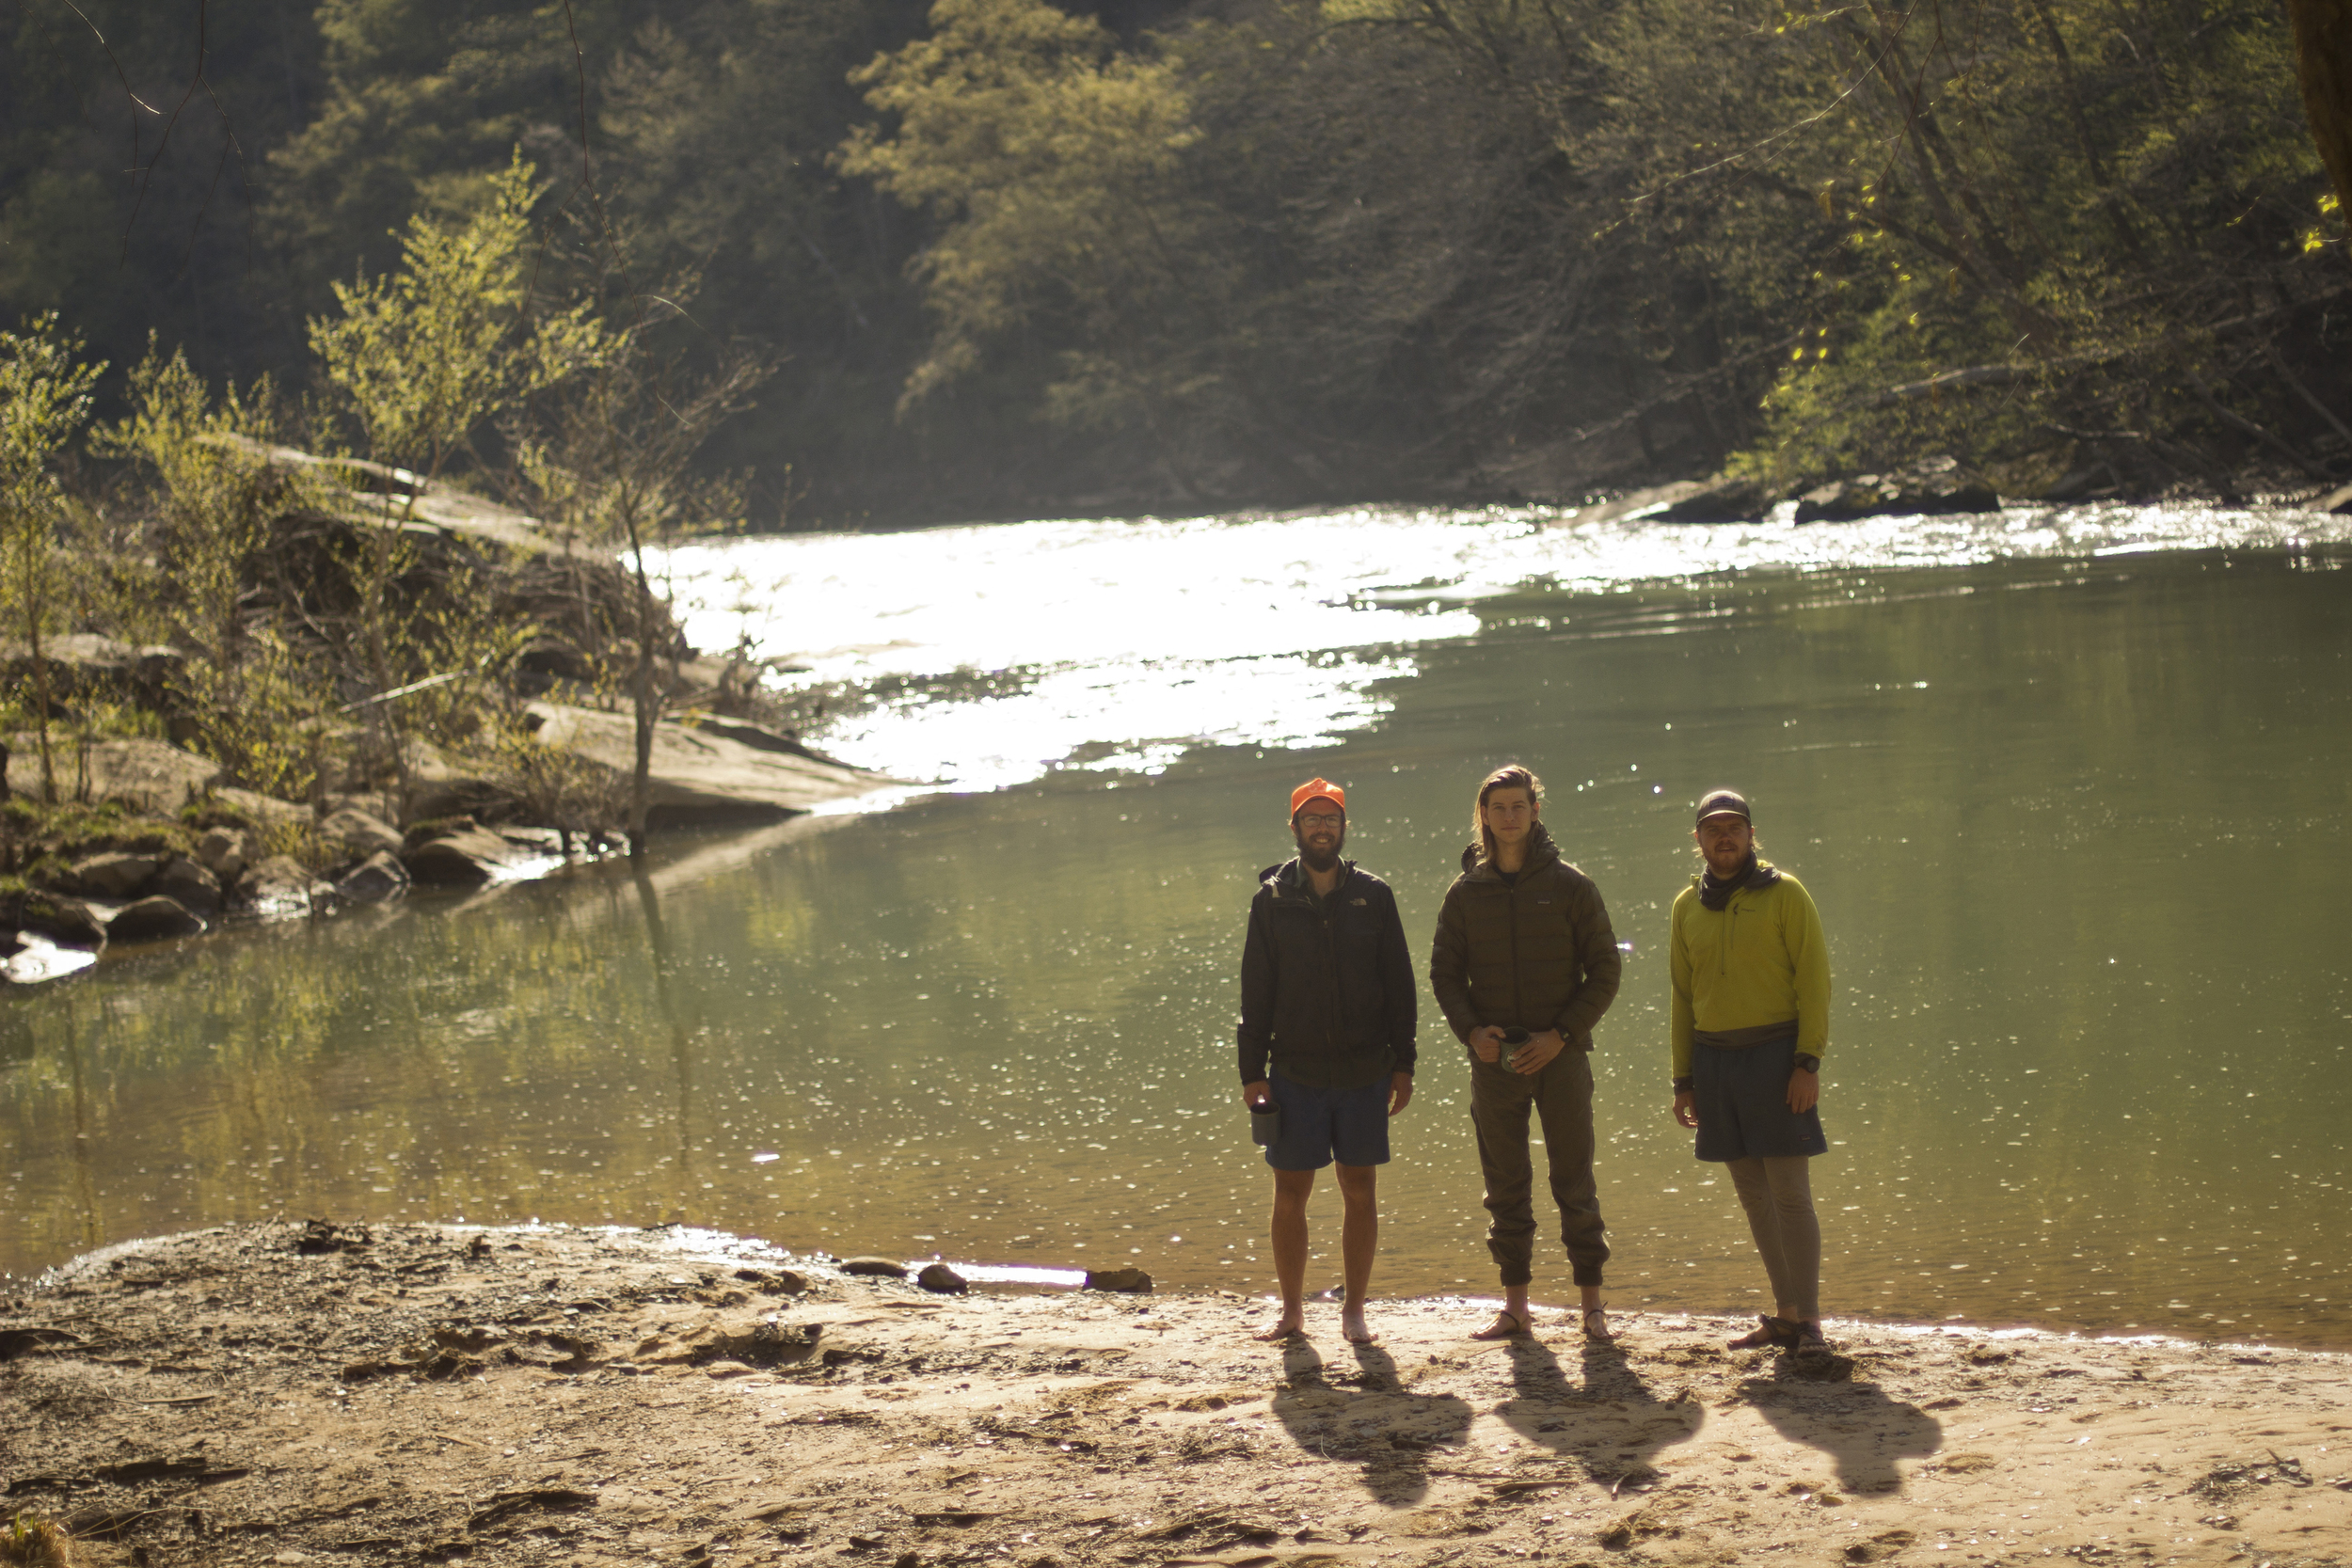 Over the Easter Holiday a few pals and I took off to paddle a 32 mile stretch of the Big South Fork which flows north from Tennessee to Kentucky. We didn't really know what we were getting into which seemed innocent enough at the time. Our stoke certainly outweighed our concerns.